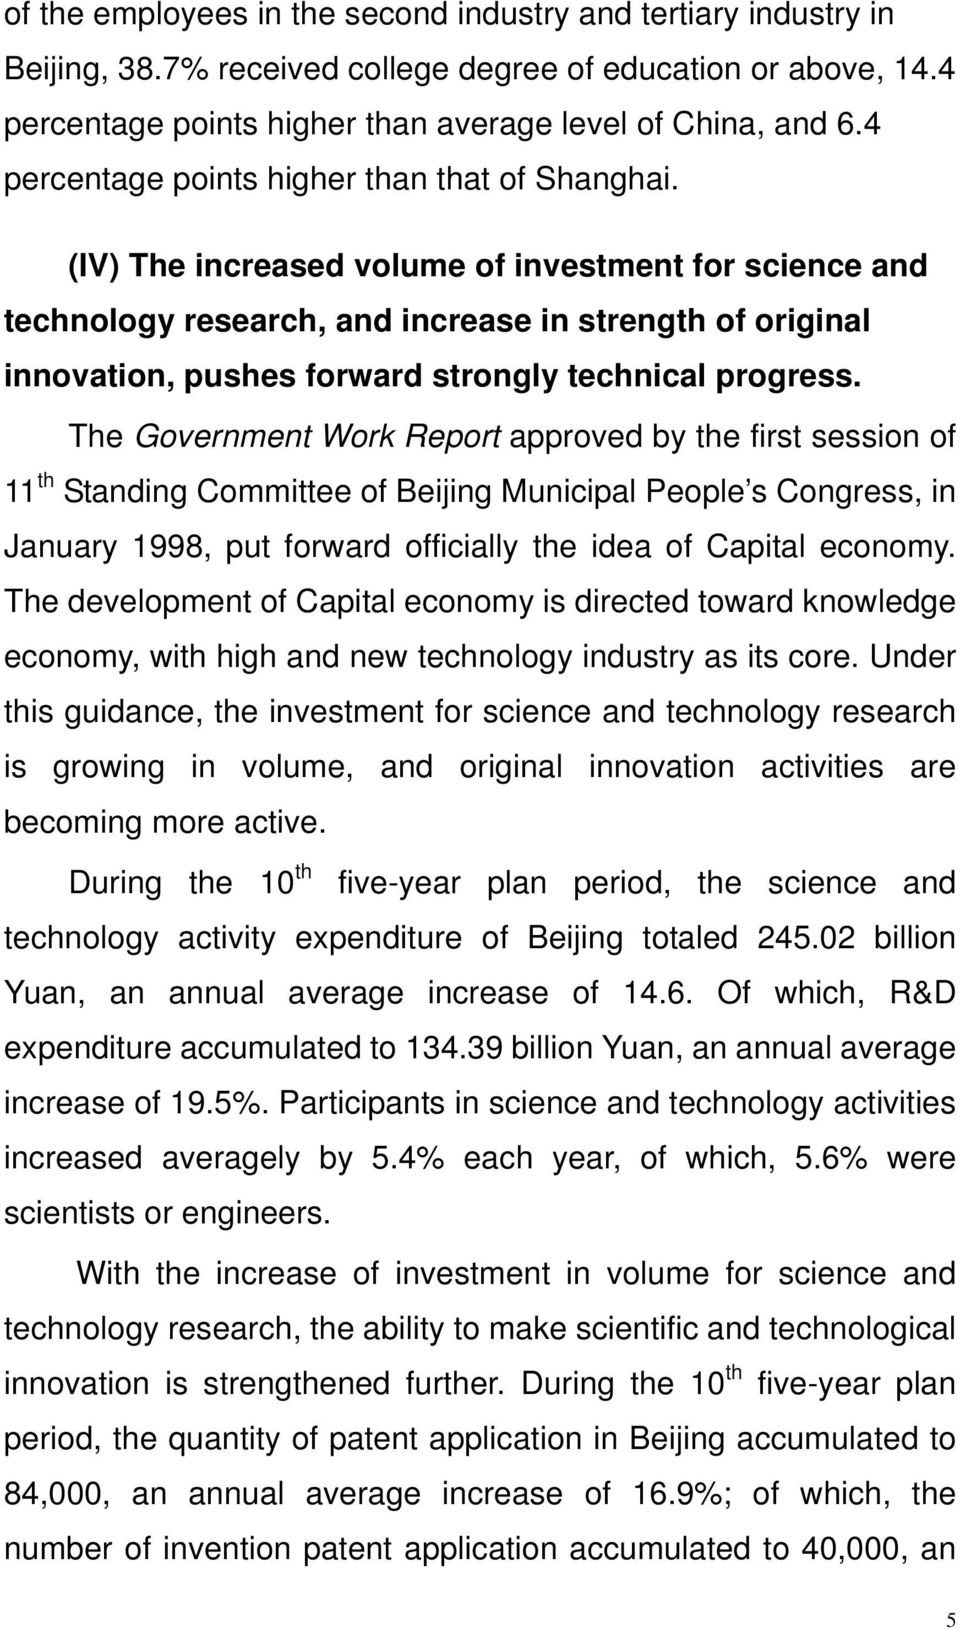 (IV) The increased volume of investment for science and technology research, and increase in strength of original innovation, pushes forward strongly technical progress.